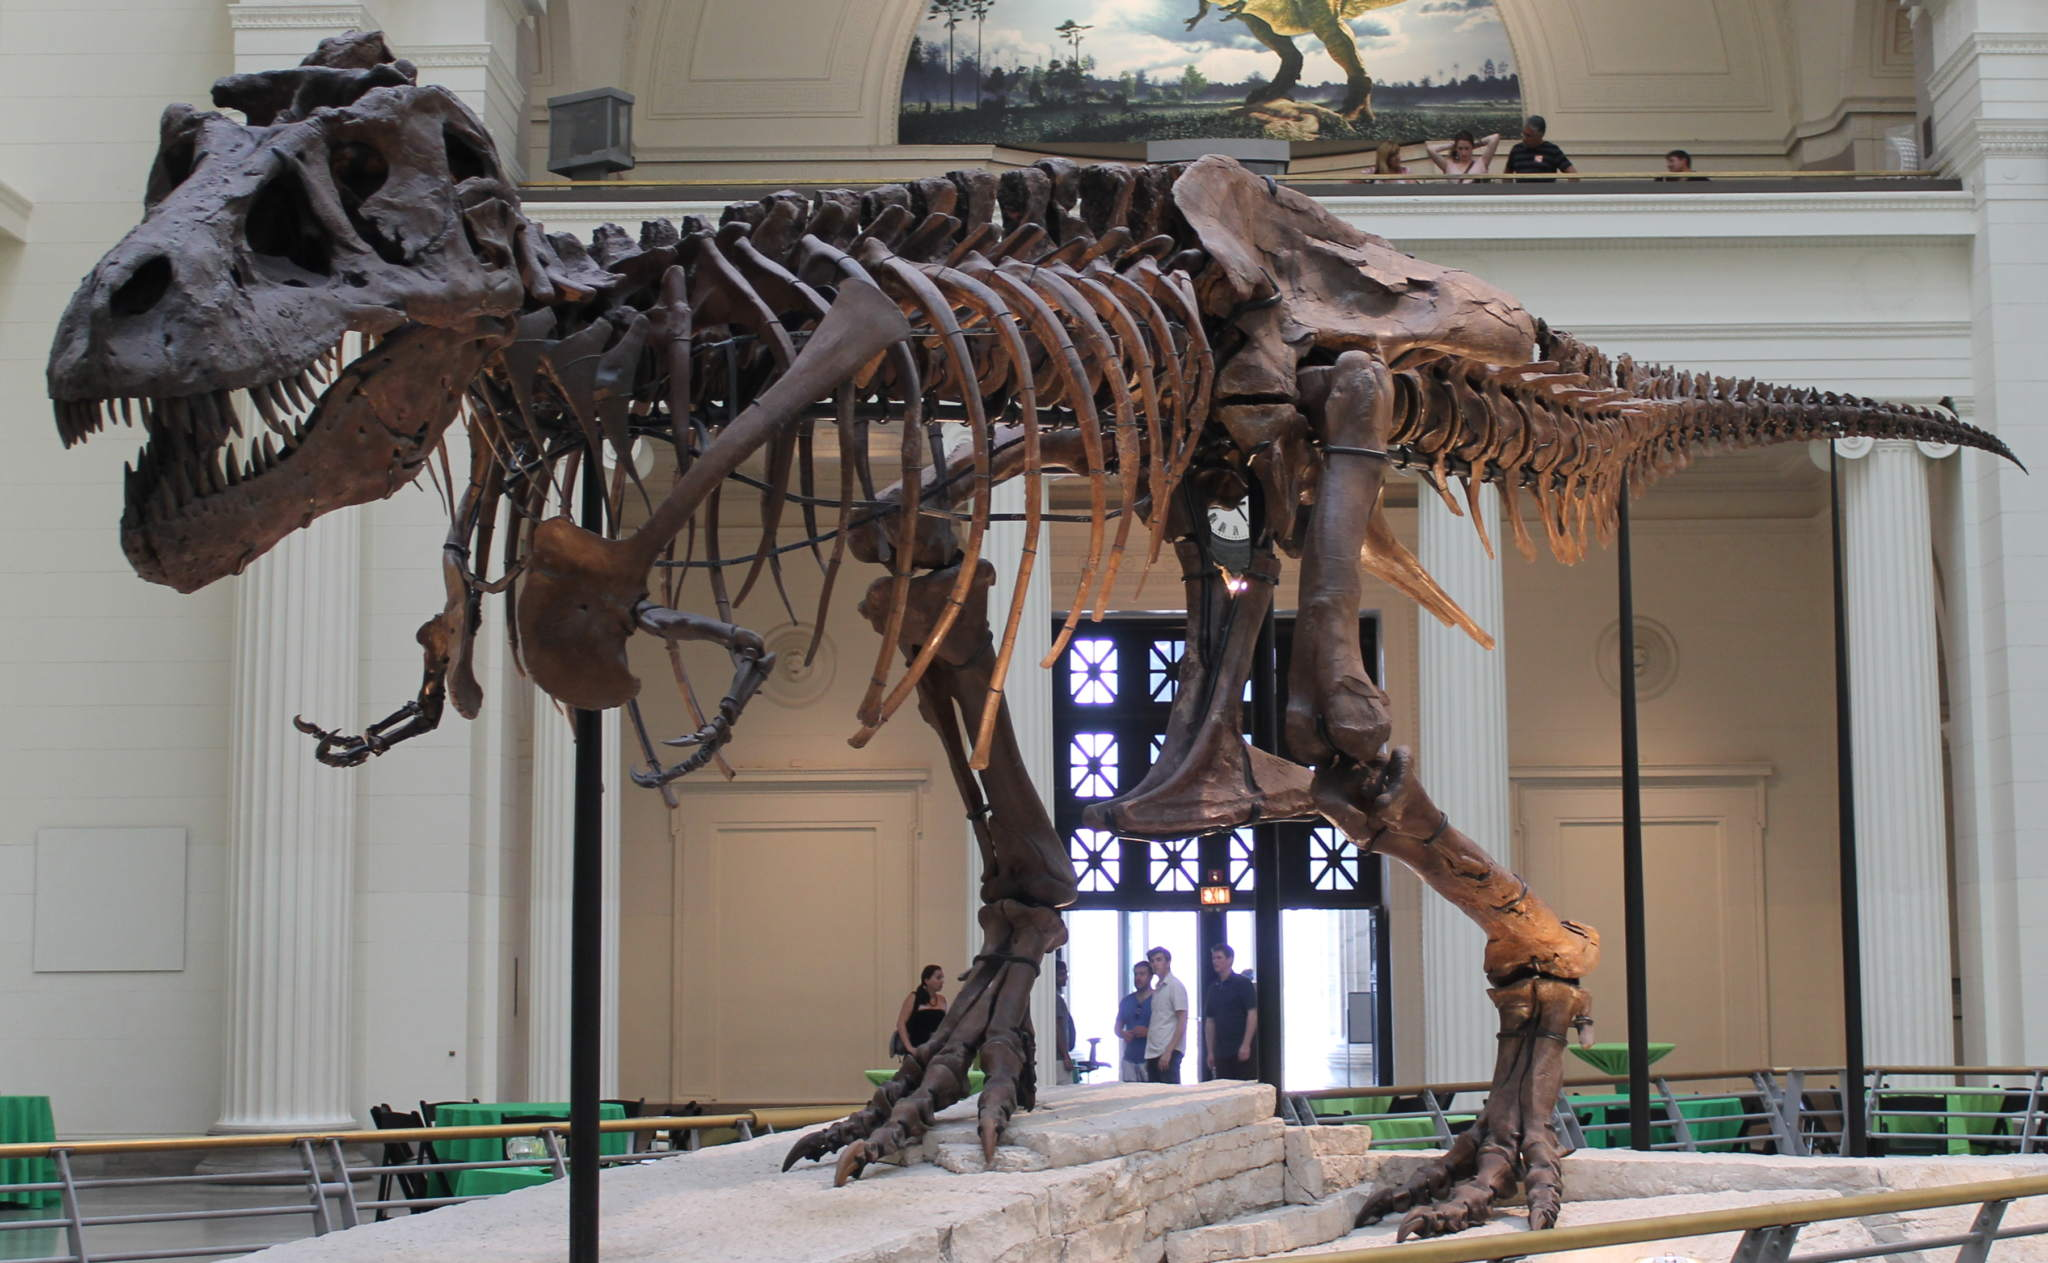 Sue the T. rex on display in Chicago. Photo by Connie Ma via Wiki Commons.